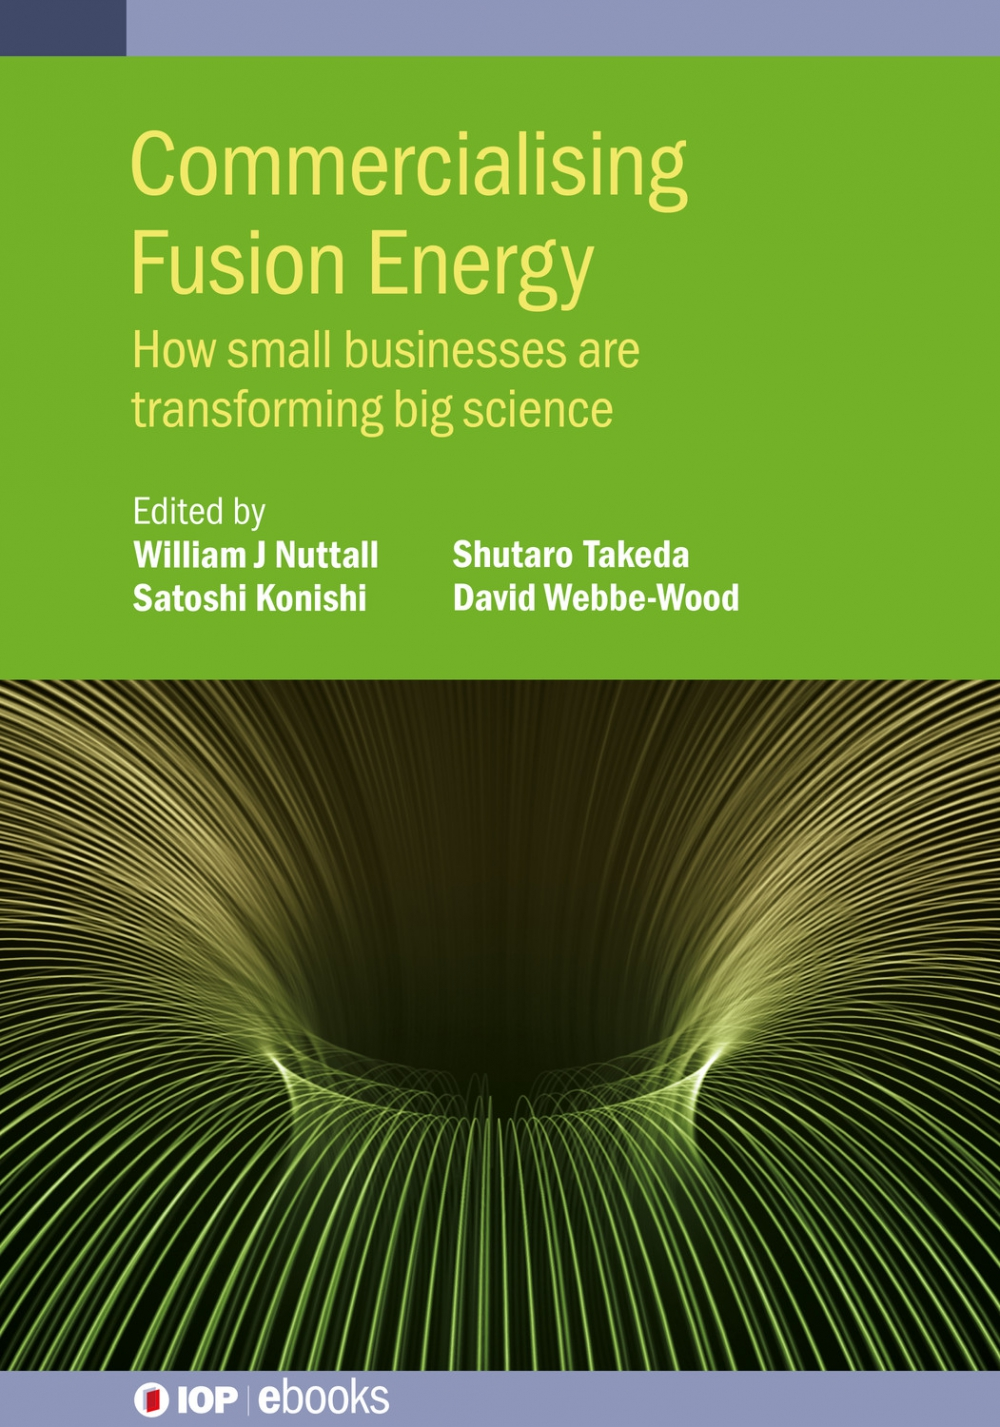 (Book) Commercialising Fusion Energy – How small businesses are transforming big science